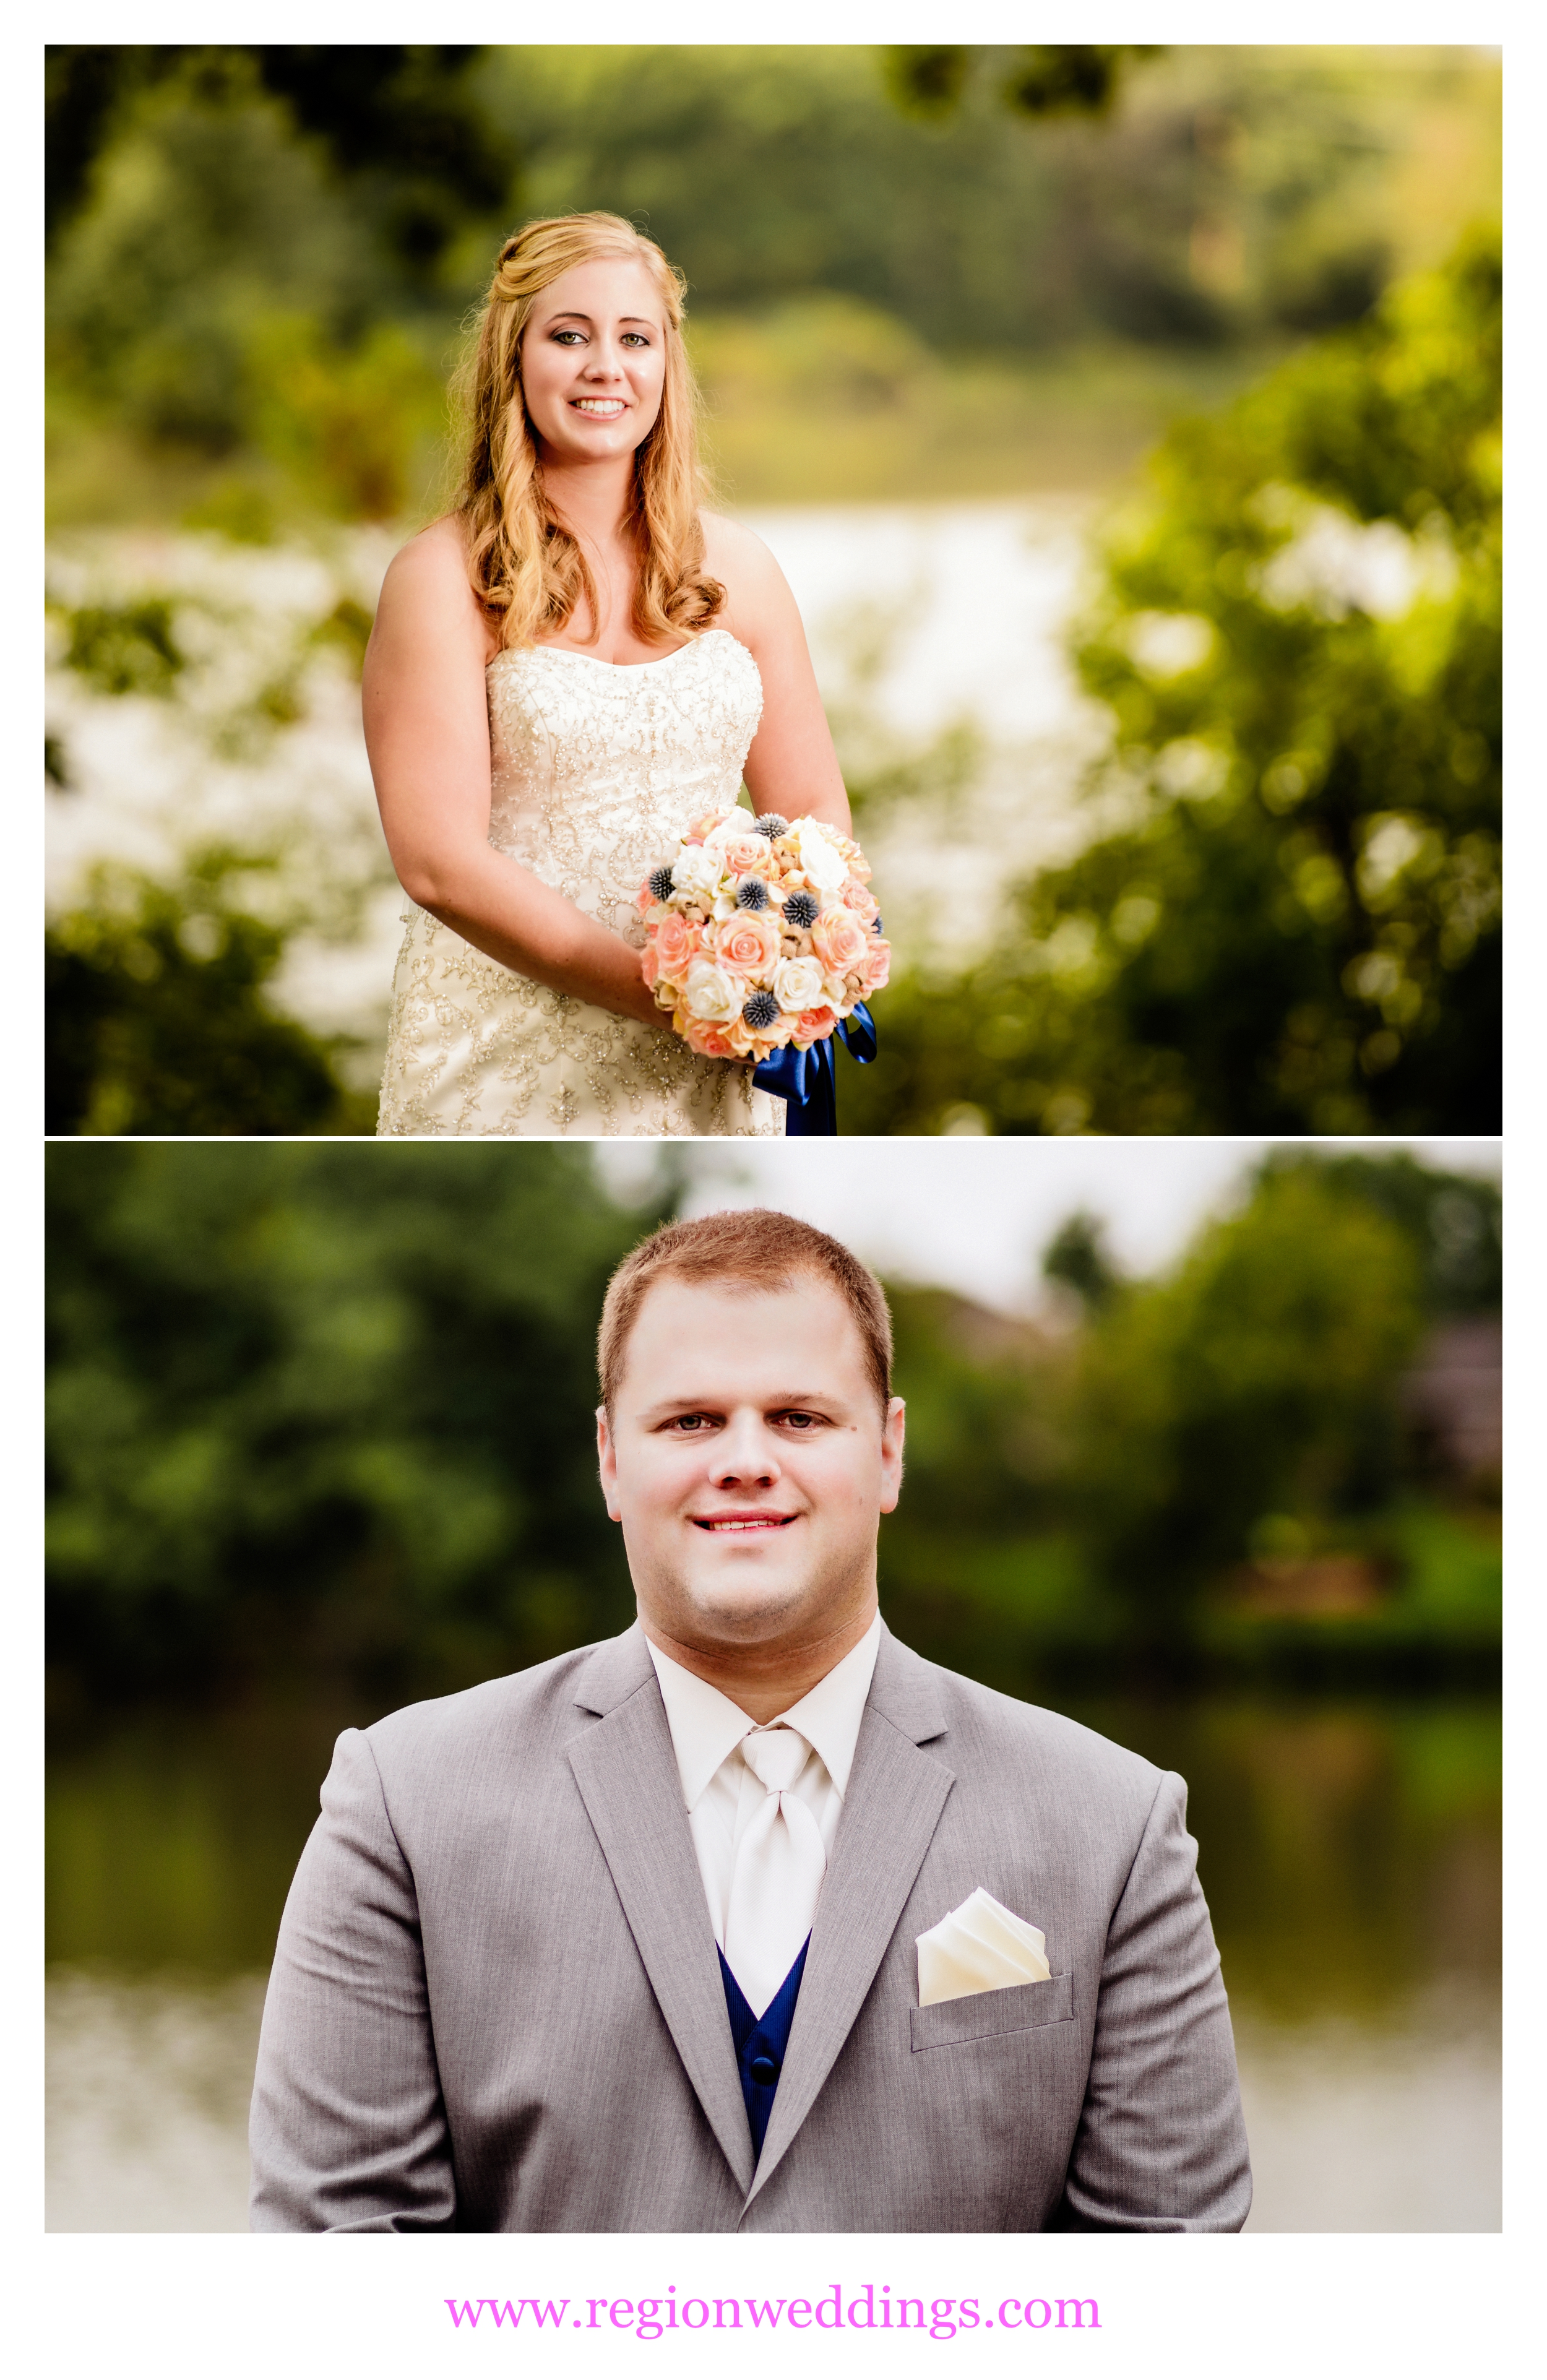 Bride and groom portraits on wedding day.